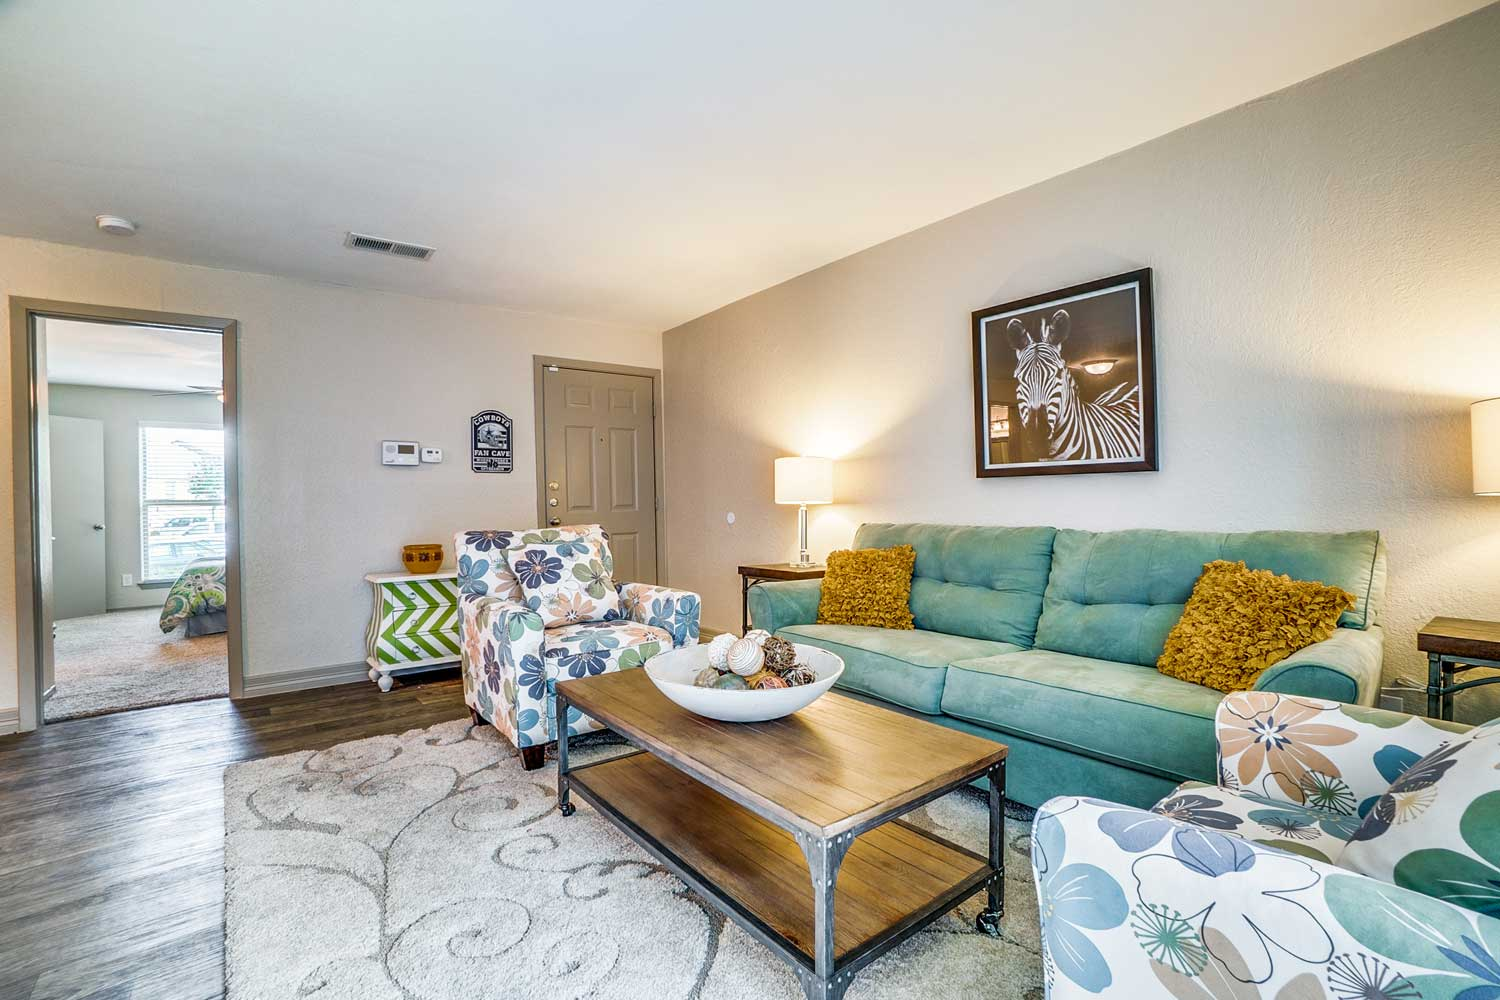 Modern Design Living Rooms at Riviera Apartments in Dallas, Texas